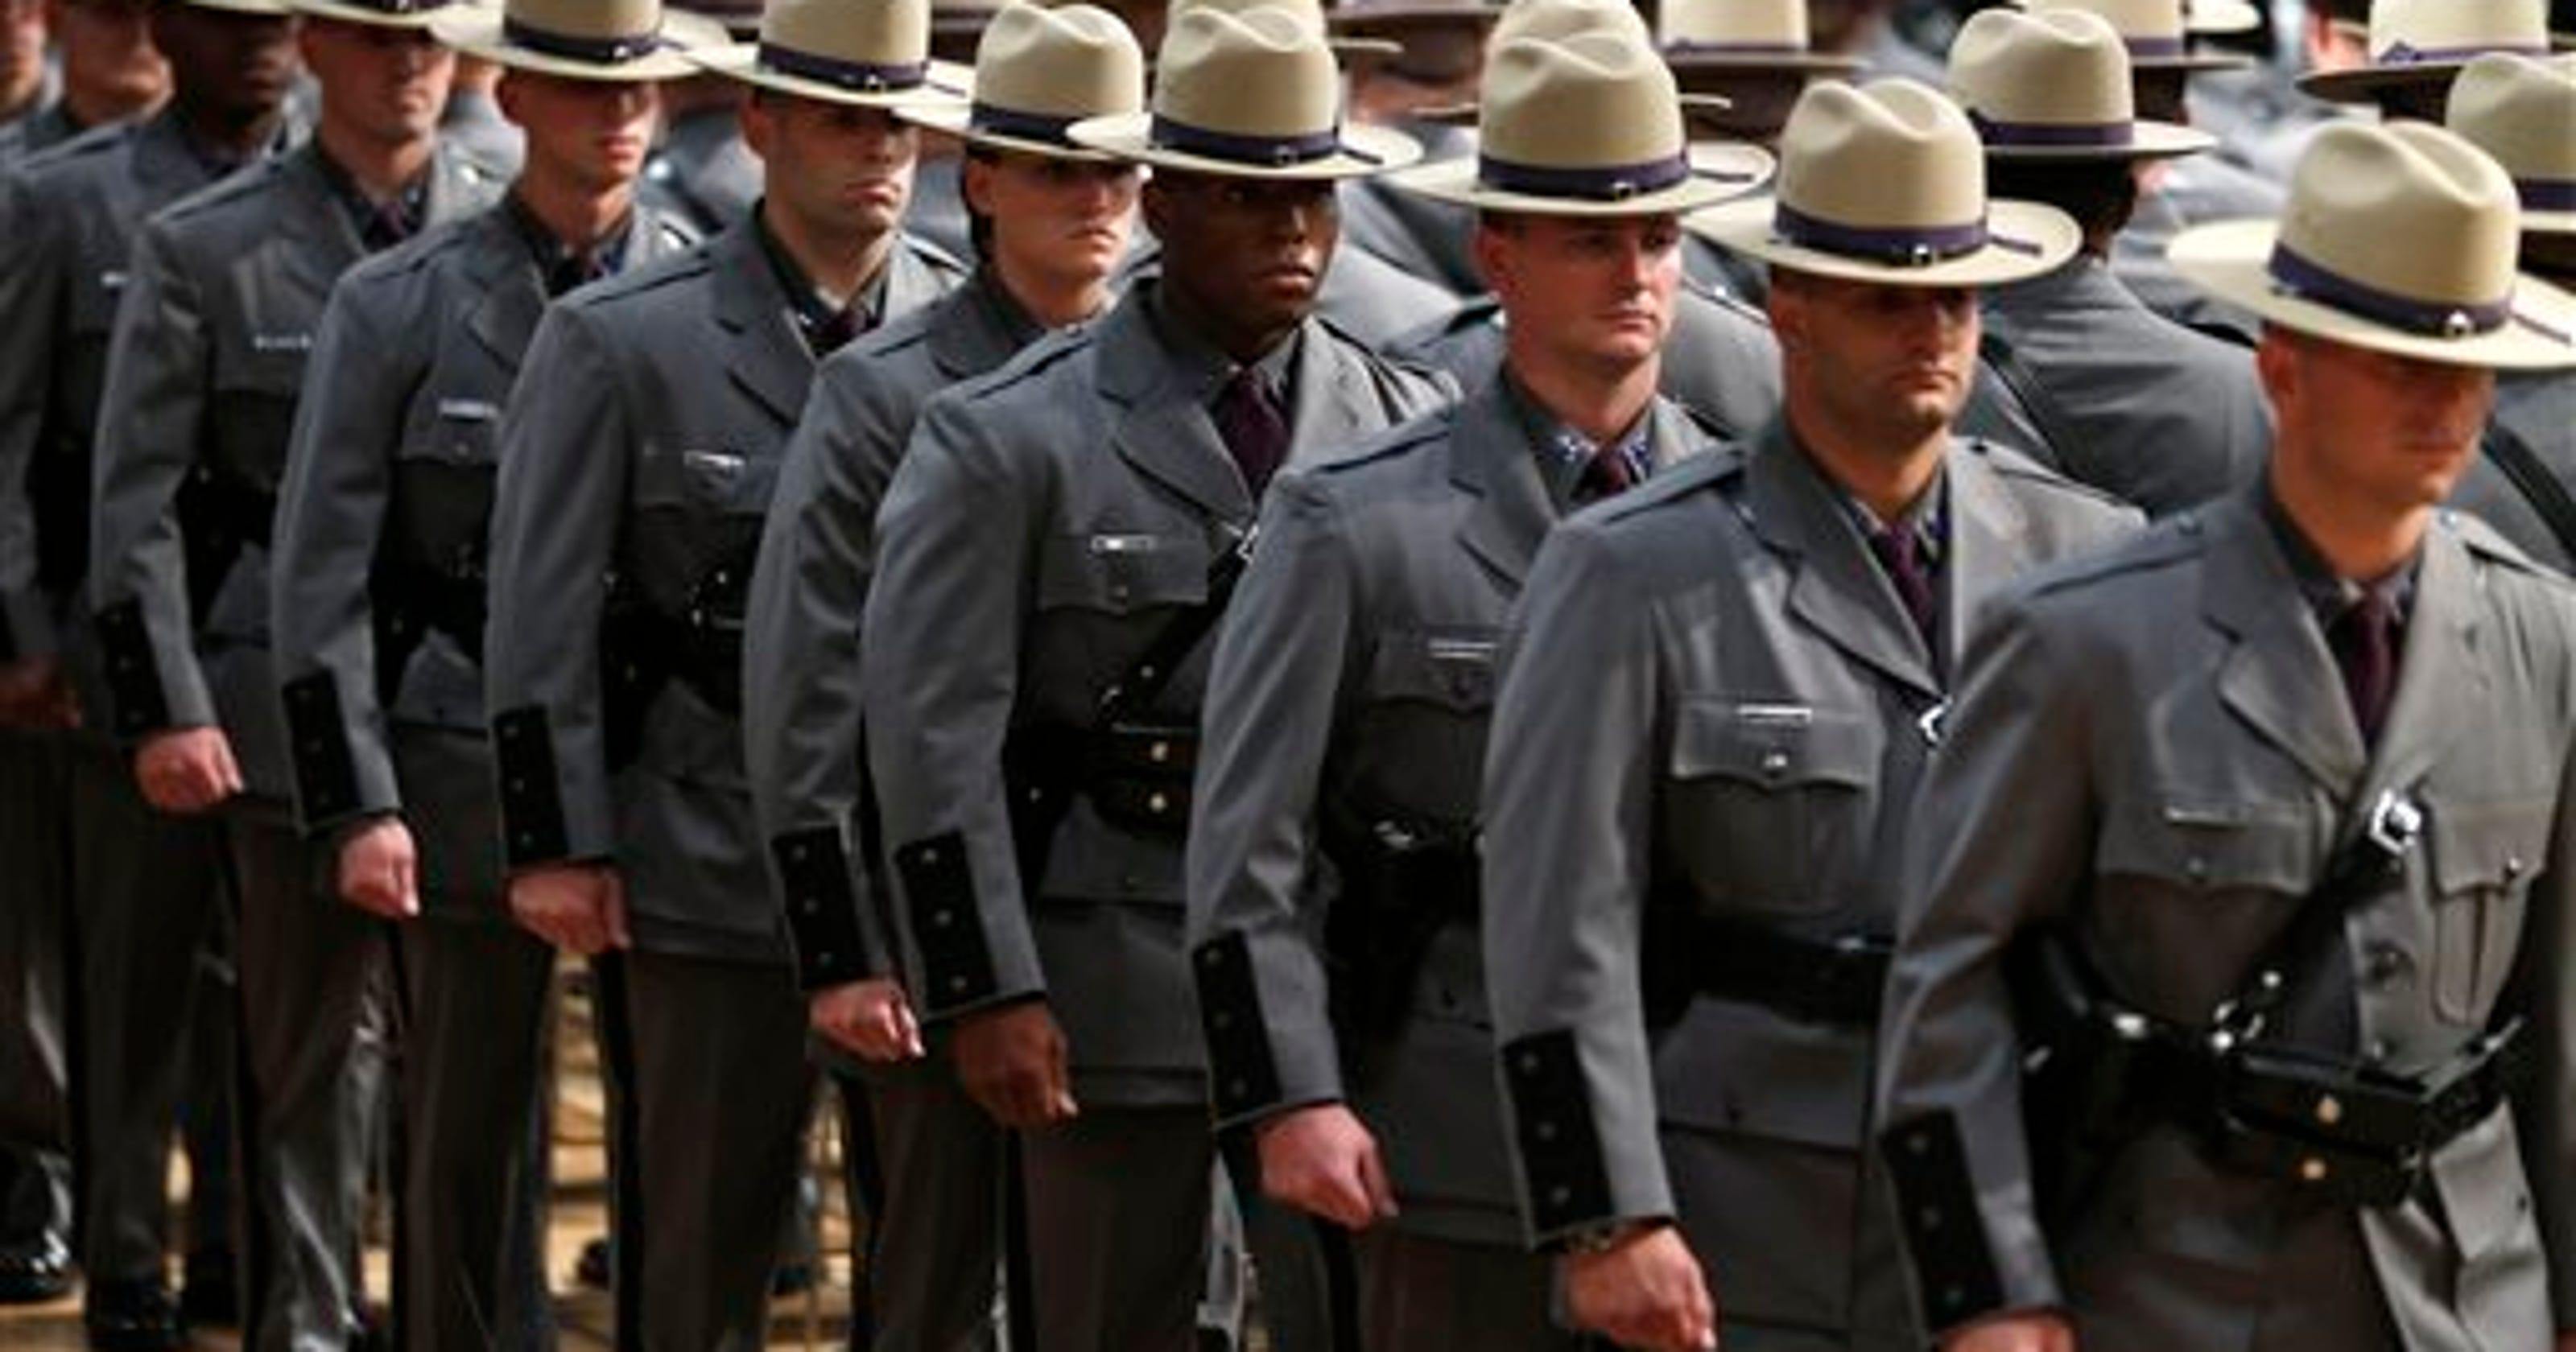 Meet your new 168 state troopers